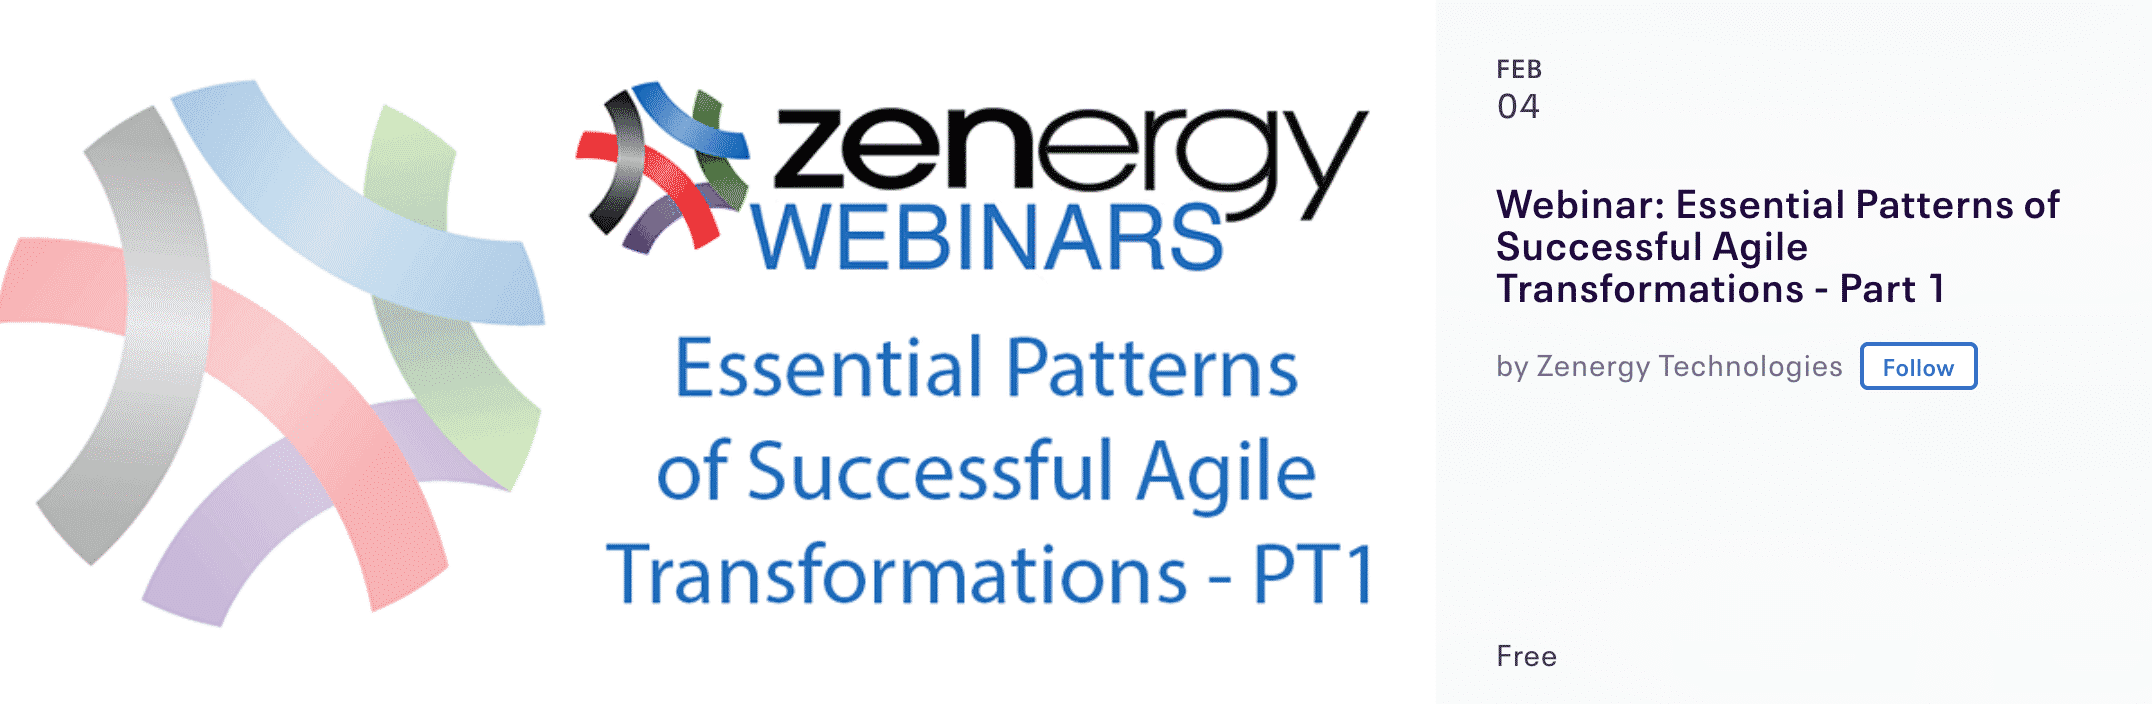 Essential Patterns of Successful Agile Transformations, part-2 Agile20Reflect Festival